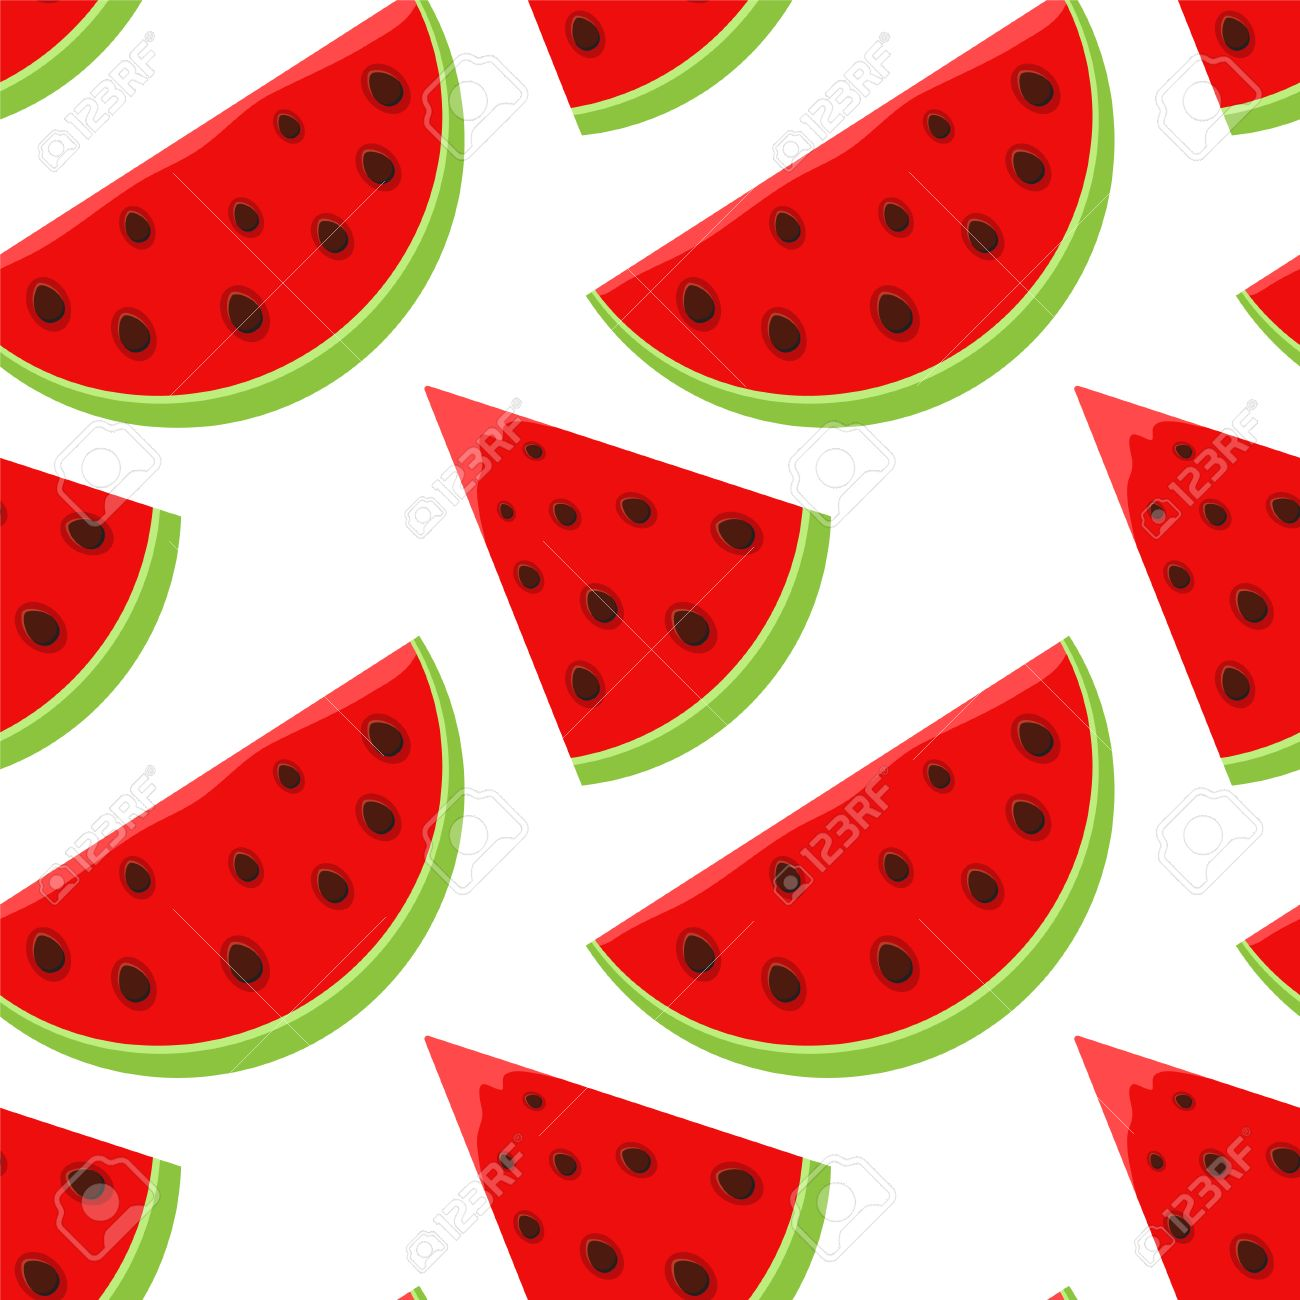 Seamless Pattern With Cartoon Watermelon Slices On White Background